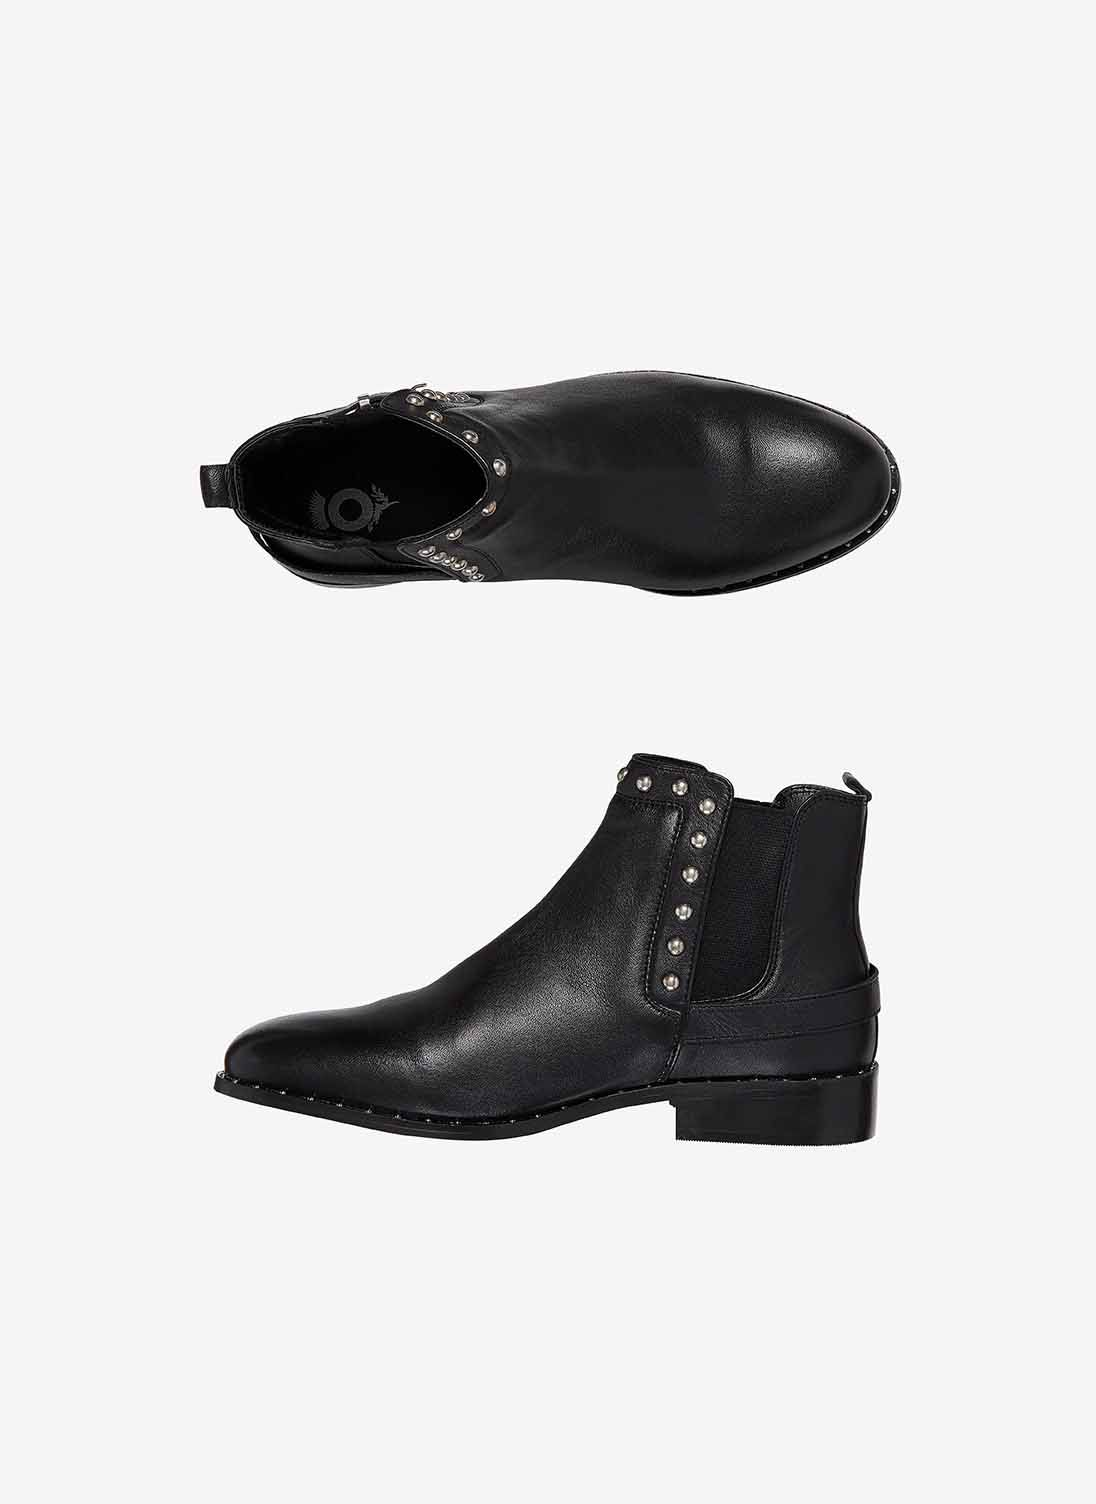 Black Leather Studded Chelsea Boots | Brora